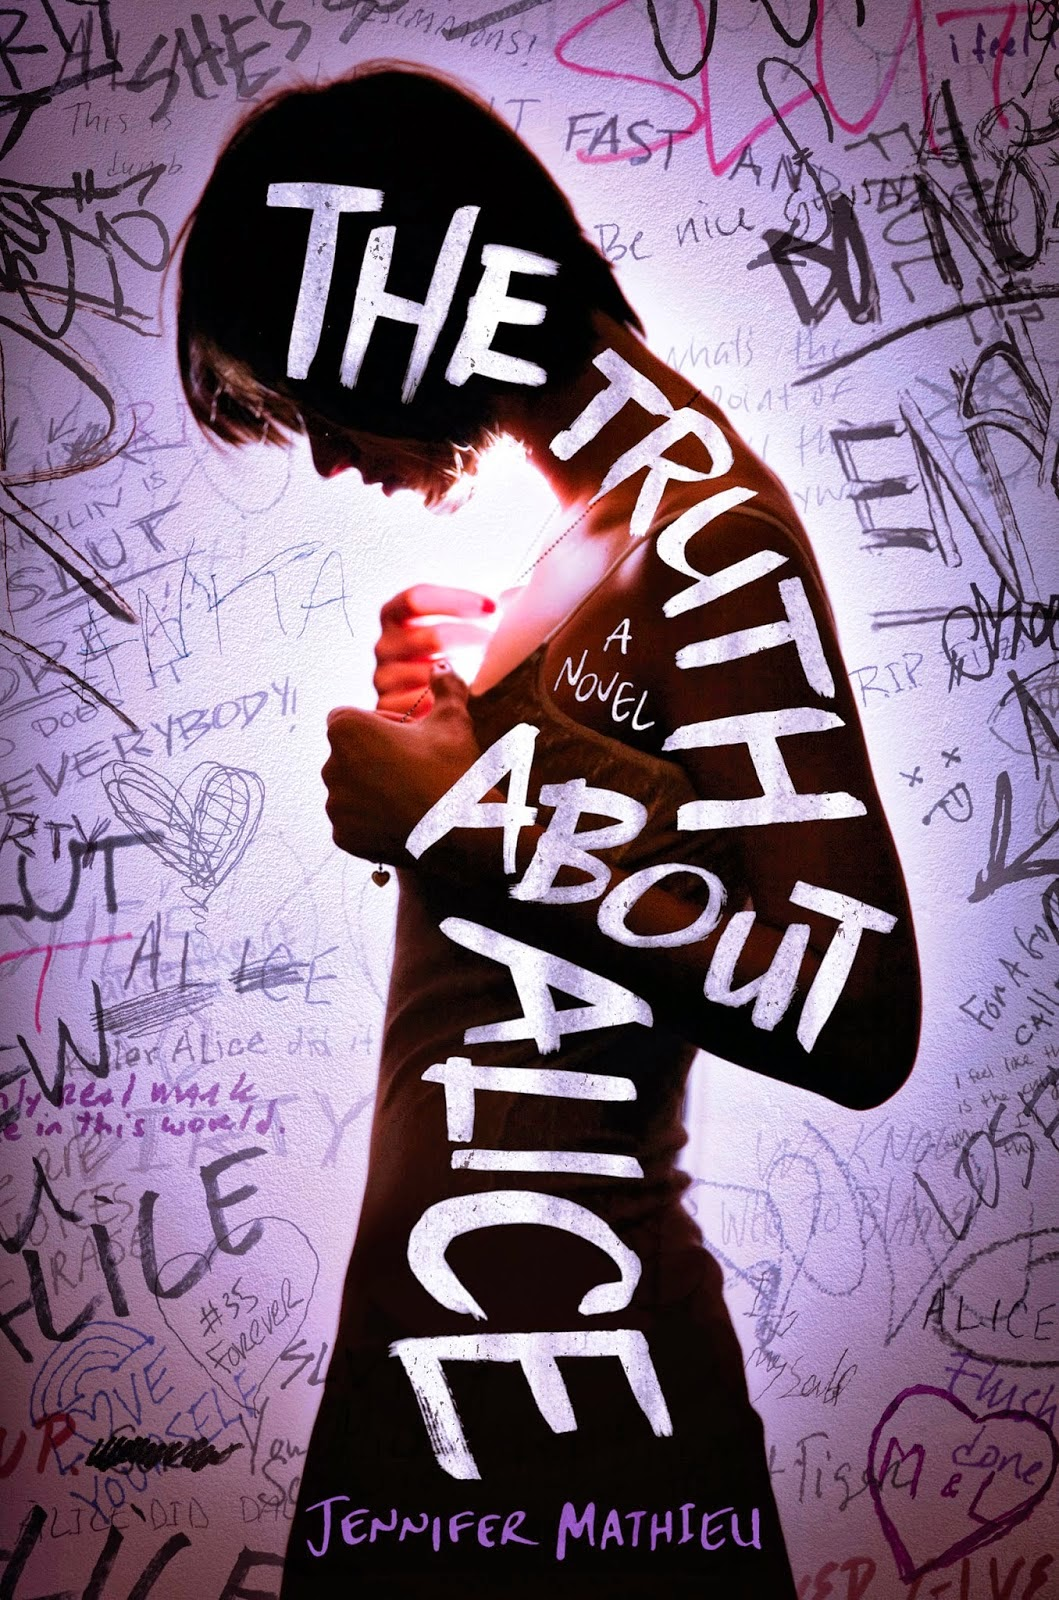 the truth about alice by jennifer mathieu ya young adult realistic fiction book cover large hd hardcover 2014